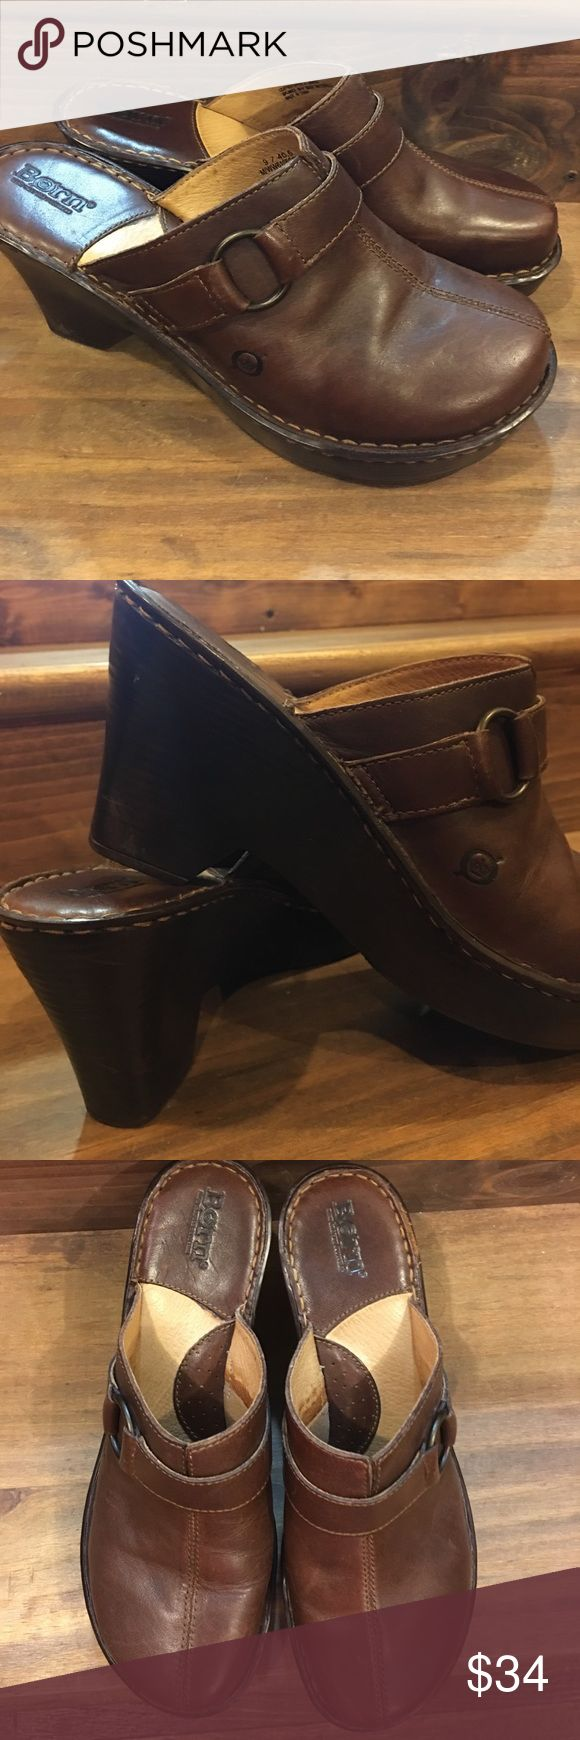 "Born Brown Mule/Clog Size 9 Born Brown Mule/Clog Size 9, gently used, there are a few minor scuffs on the leather and on the heels from normal wear. Great pair of shoes and very comfortable. 3 1/2"" heel height. Born Shoes Mules & Clogs"